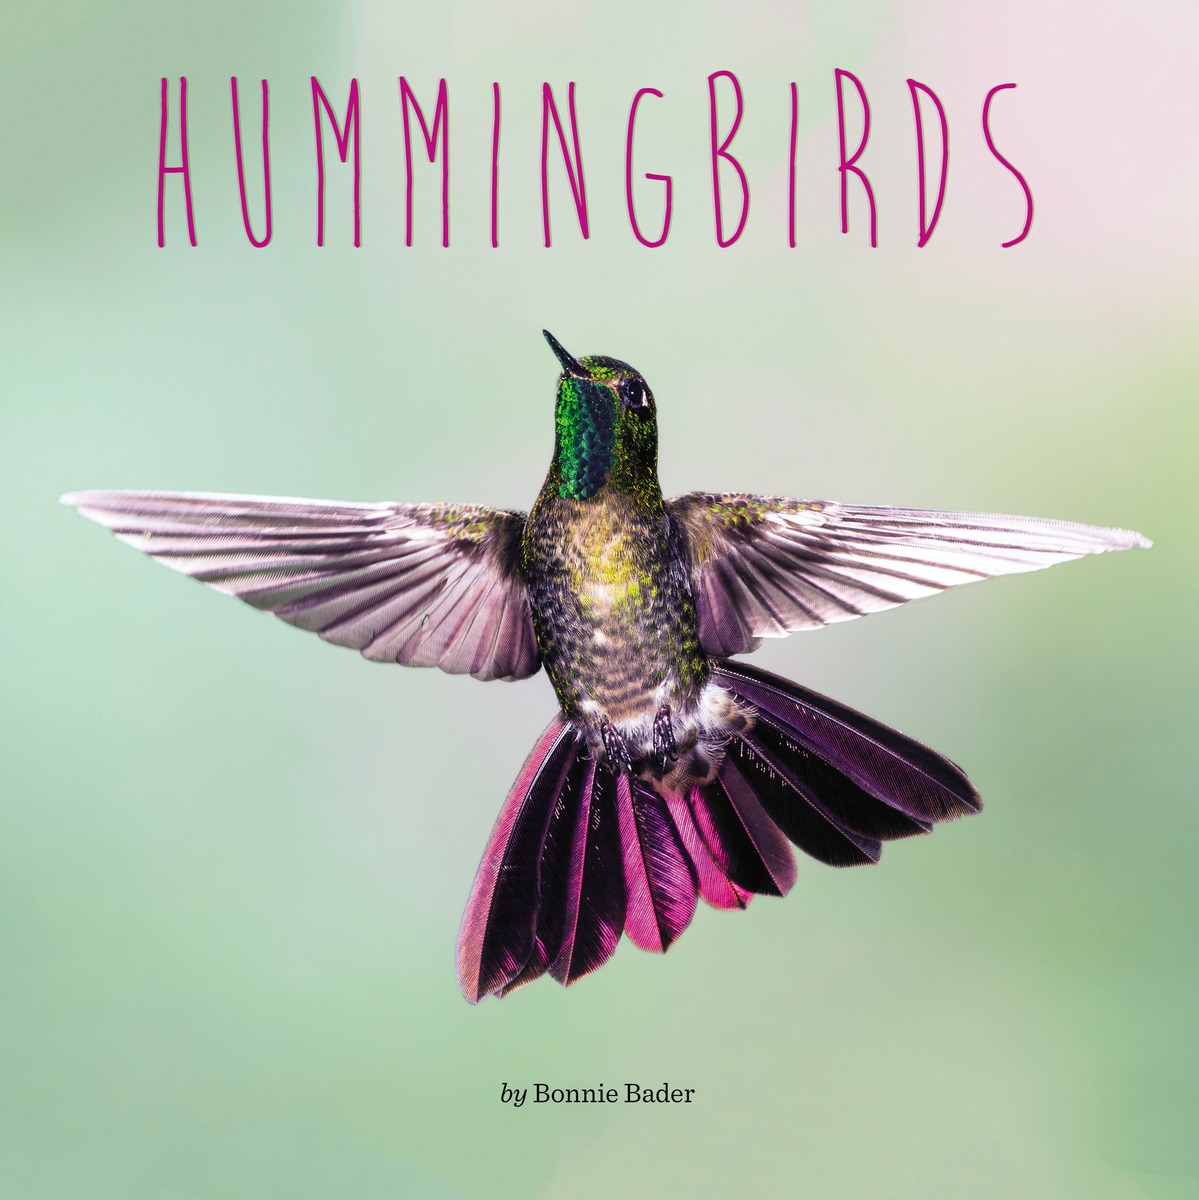 HUMMINGBIRDS seeing things as they are